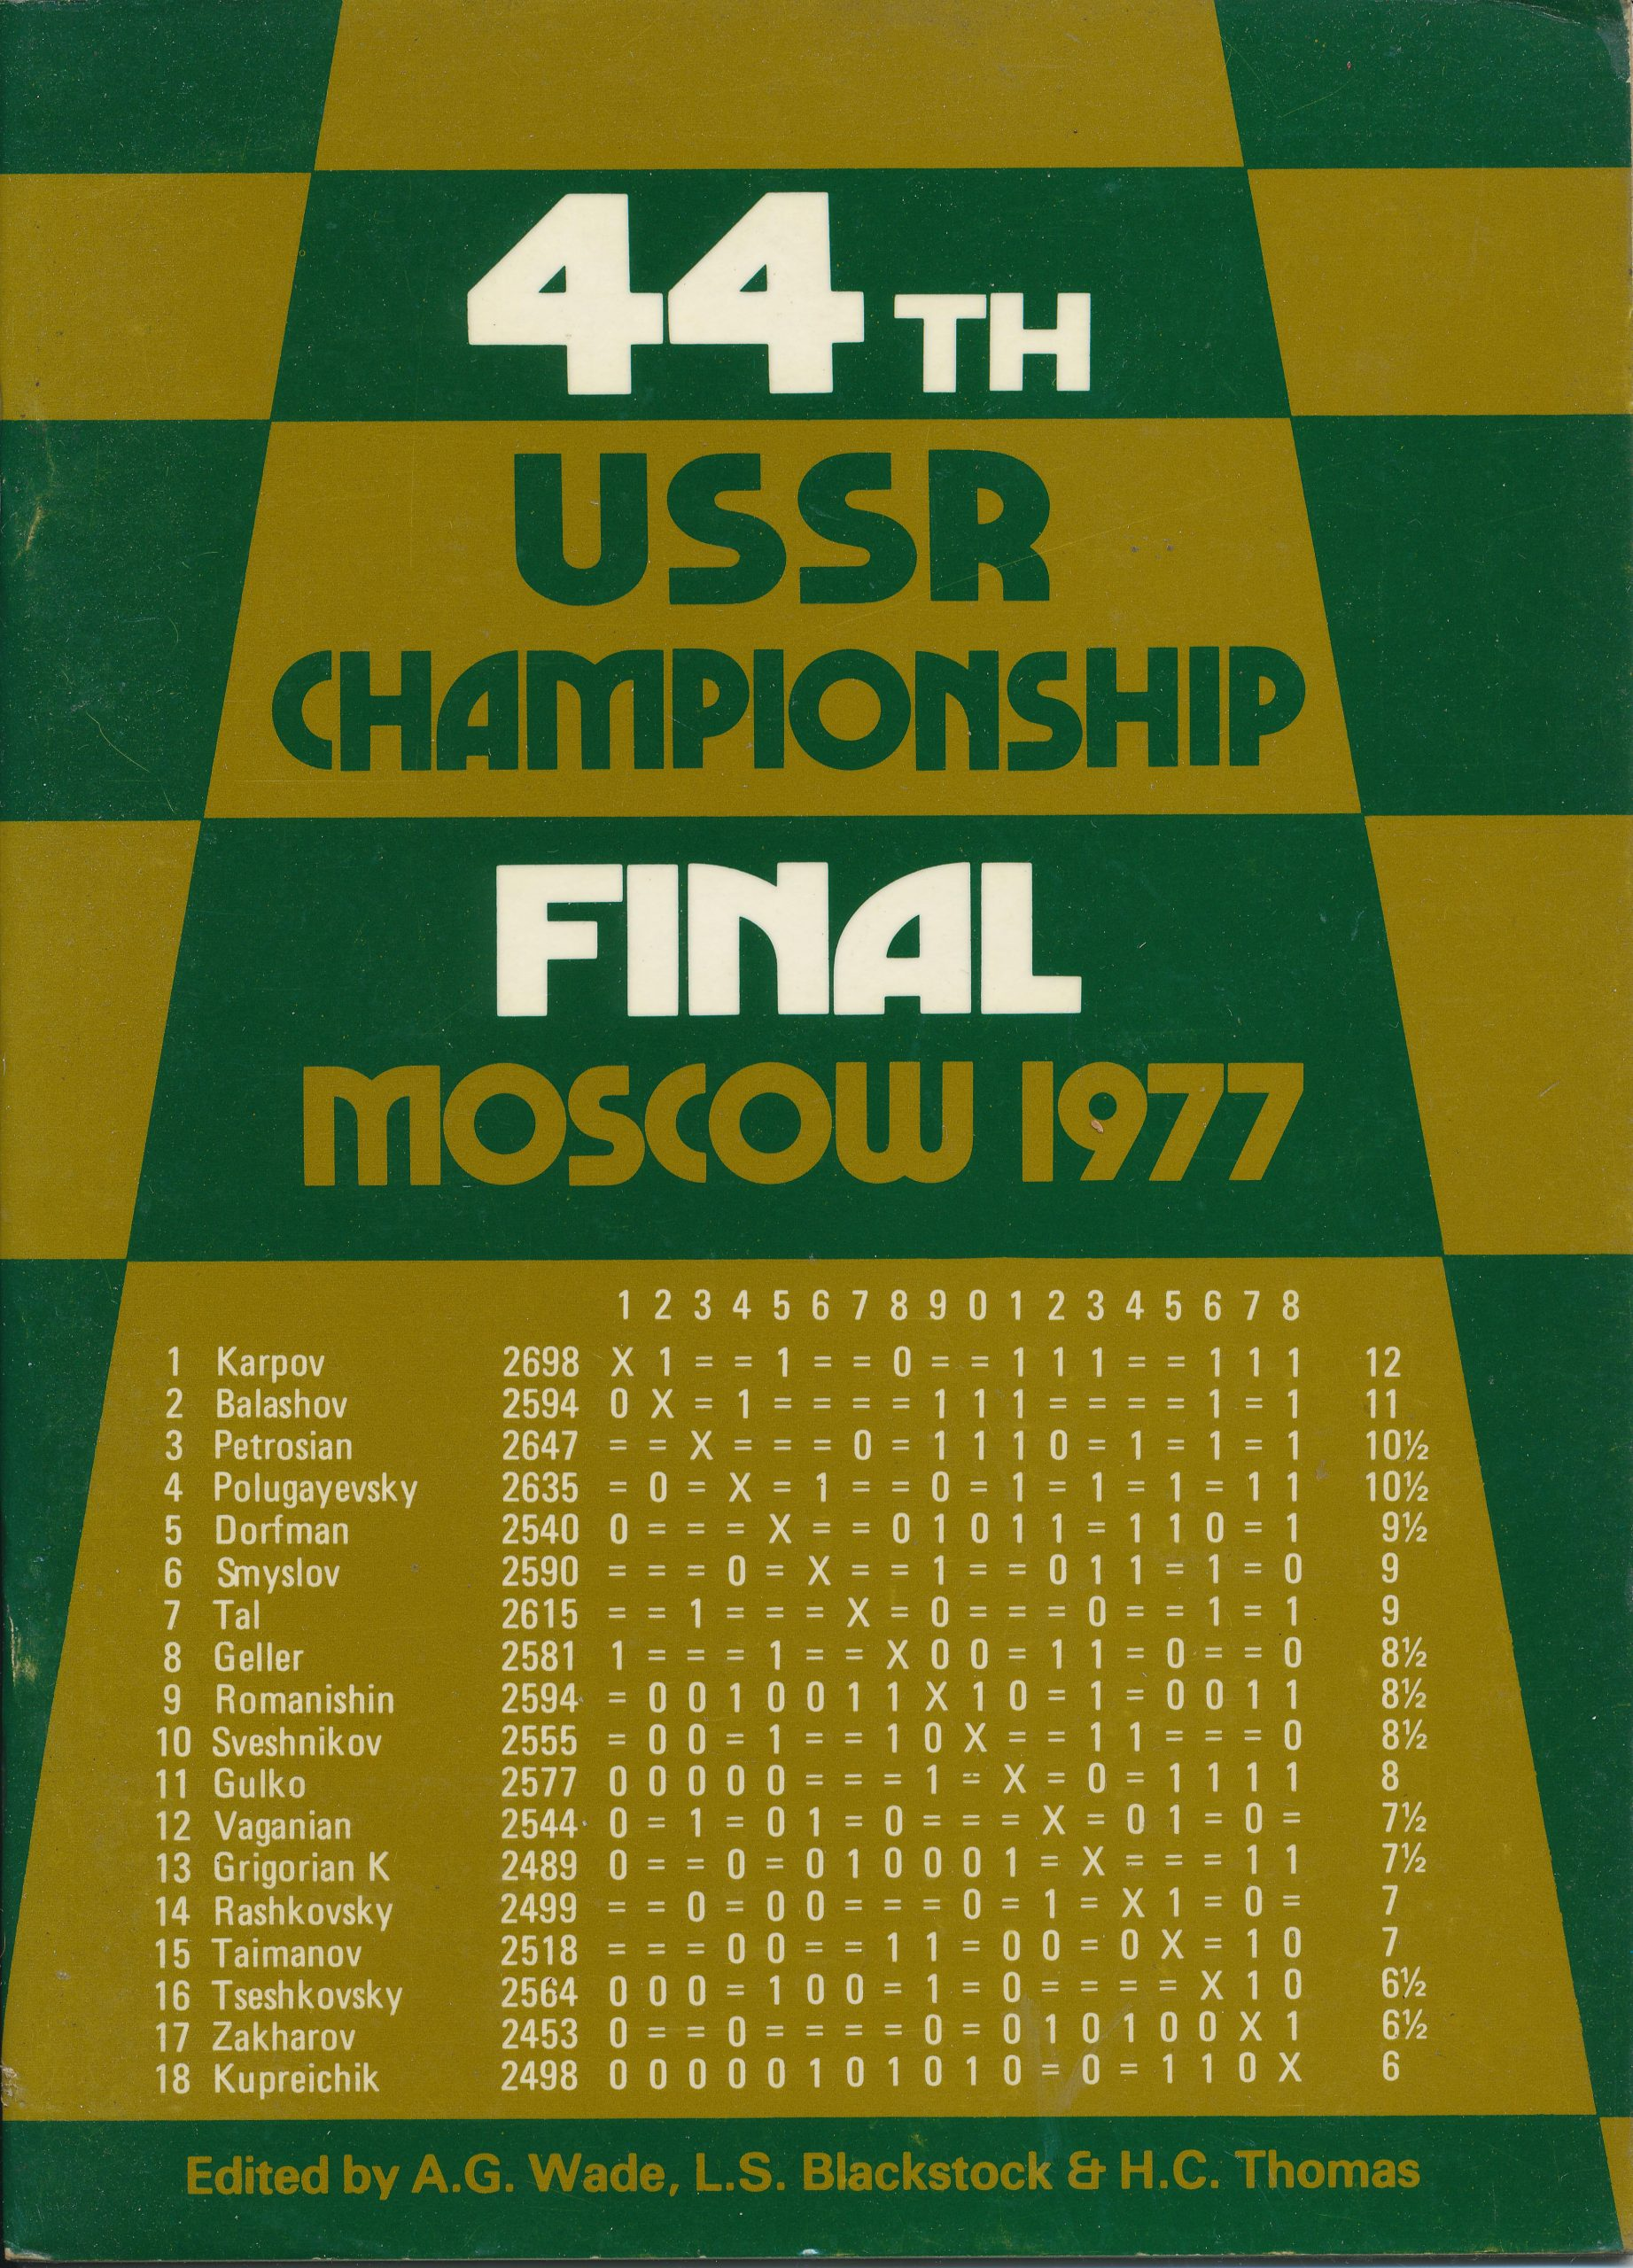 44th USSR Championship Final Moscow 1977, RG Wade, LS Blackstock and HC Thomas, Master Chess Publications, 1977